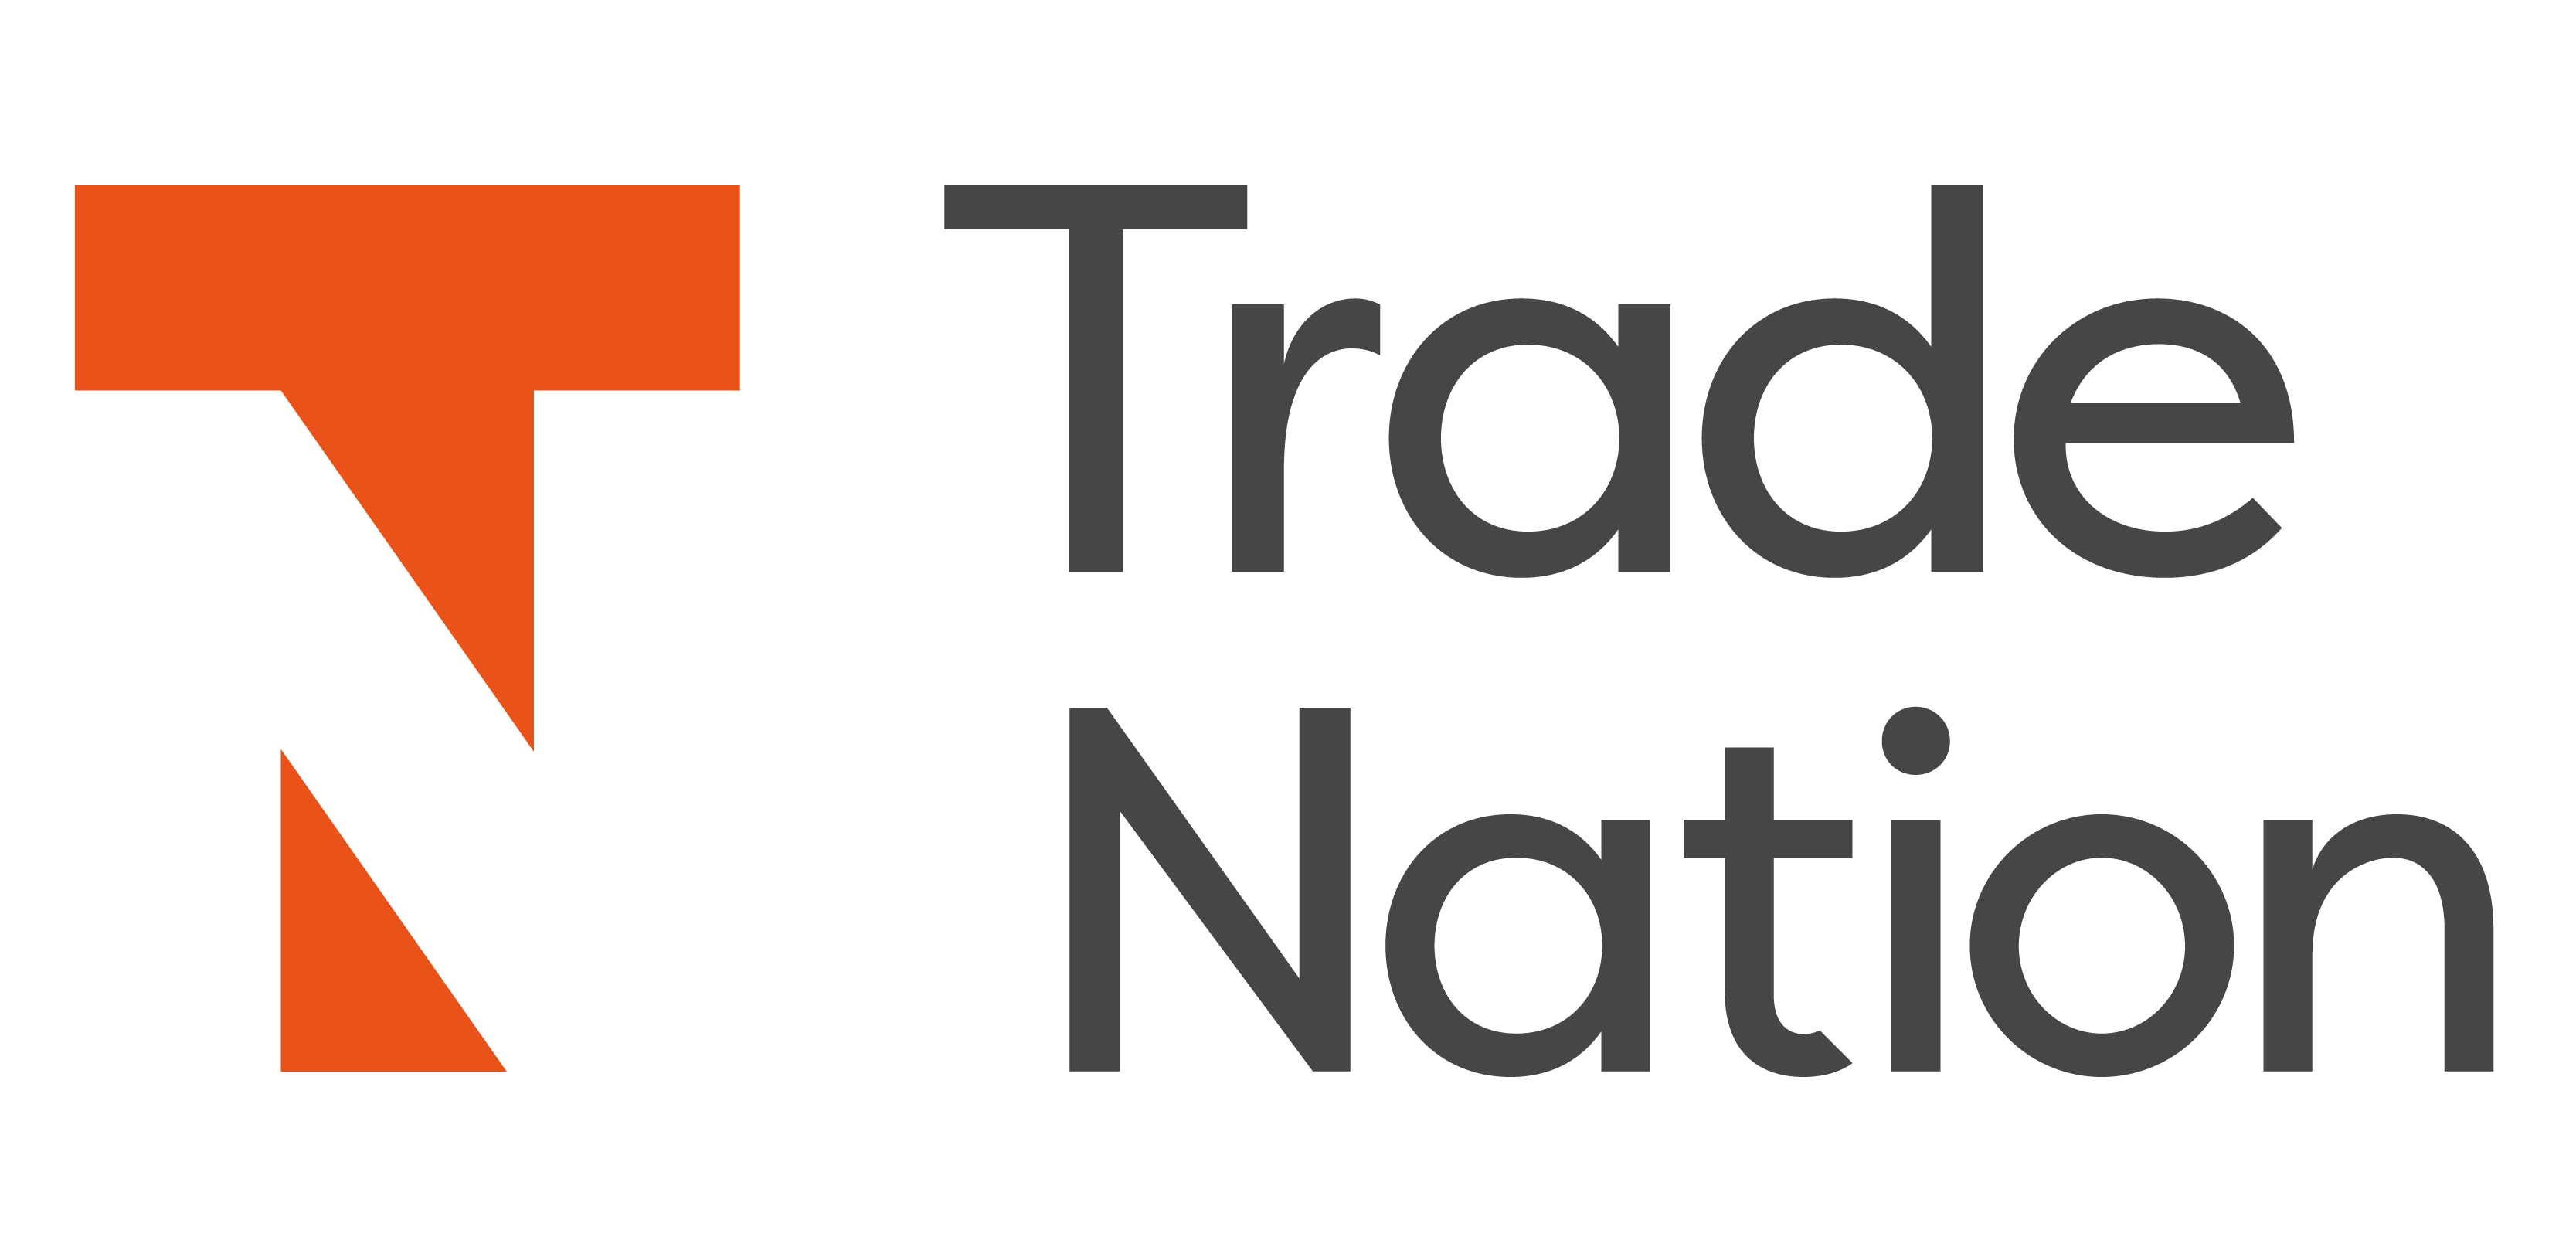 Trade Nation launch a cost-effective new initiative on MT4 trading platform